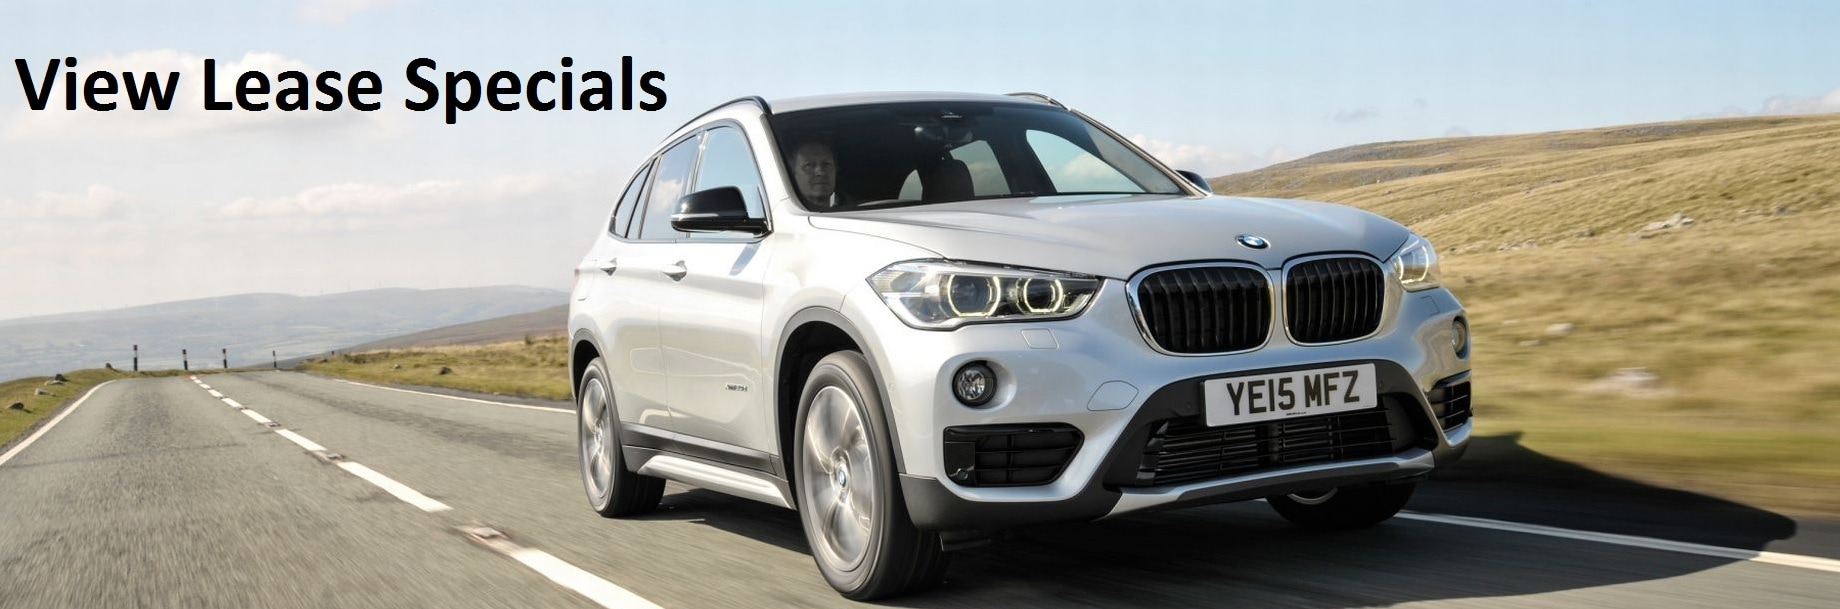 Buy Or Lease Bmw X1 Series Los Angeles Thousand Oaks Westlake